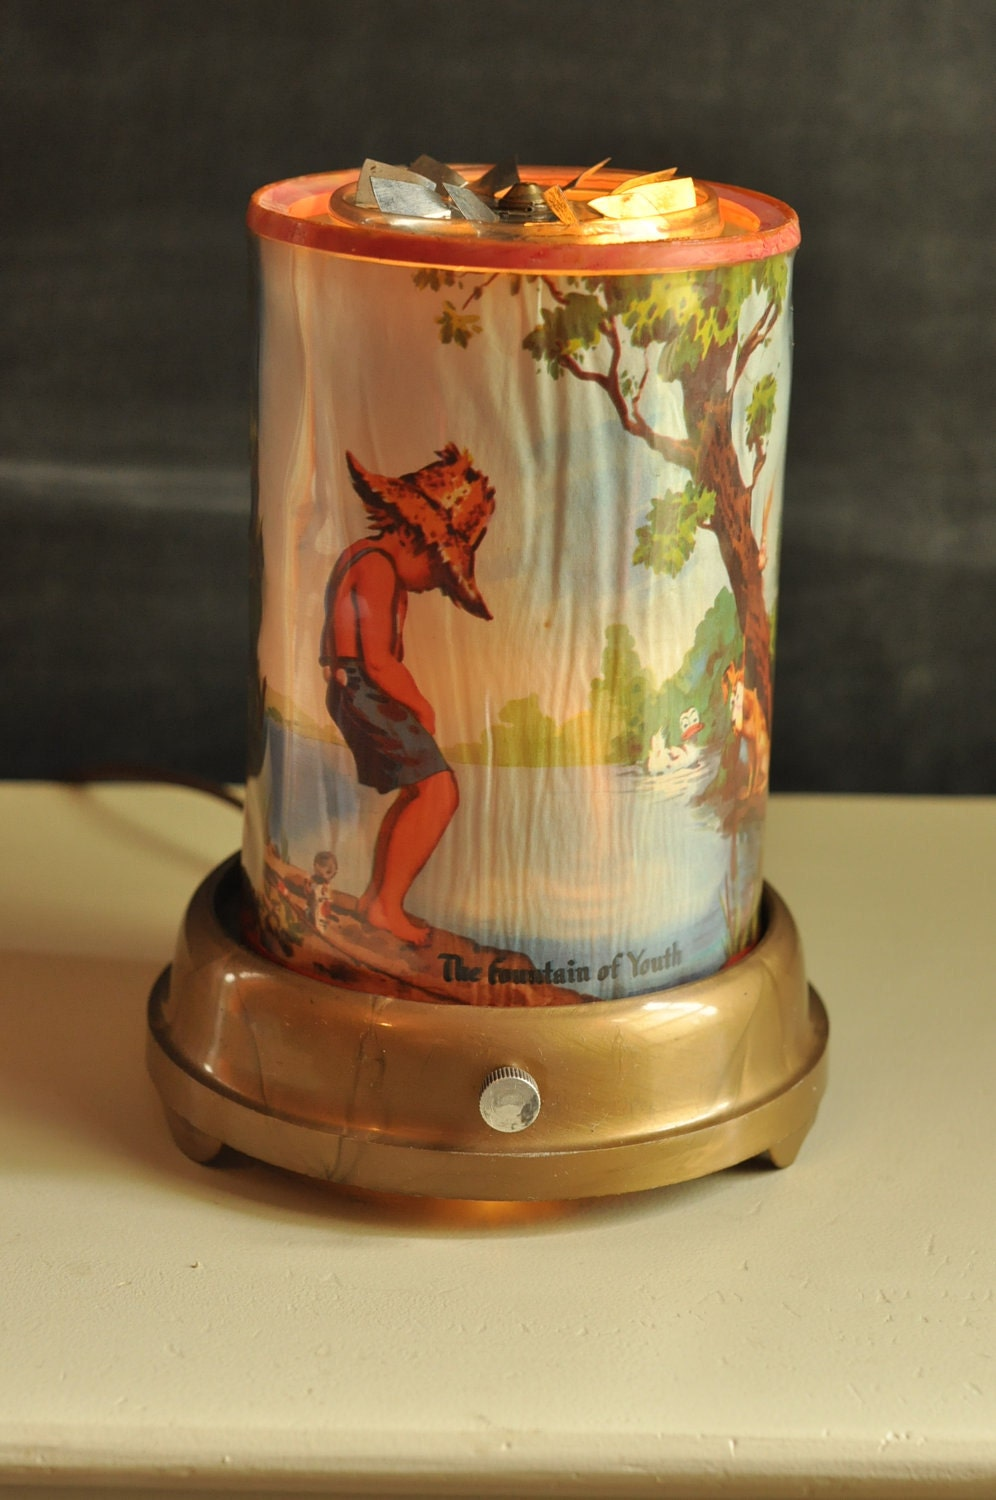 Vintage Motion Lamp Rotating Fountain of Youth Revolving Lamp